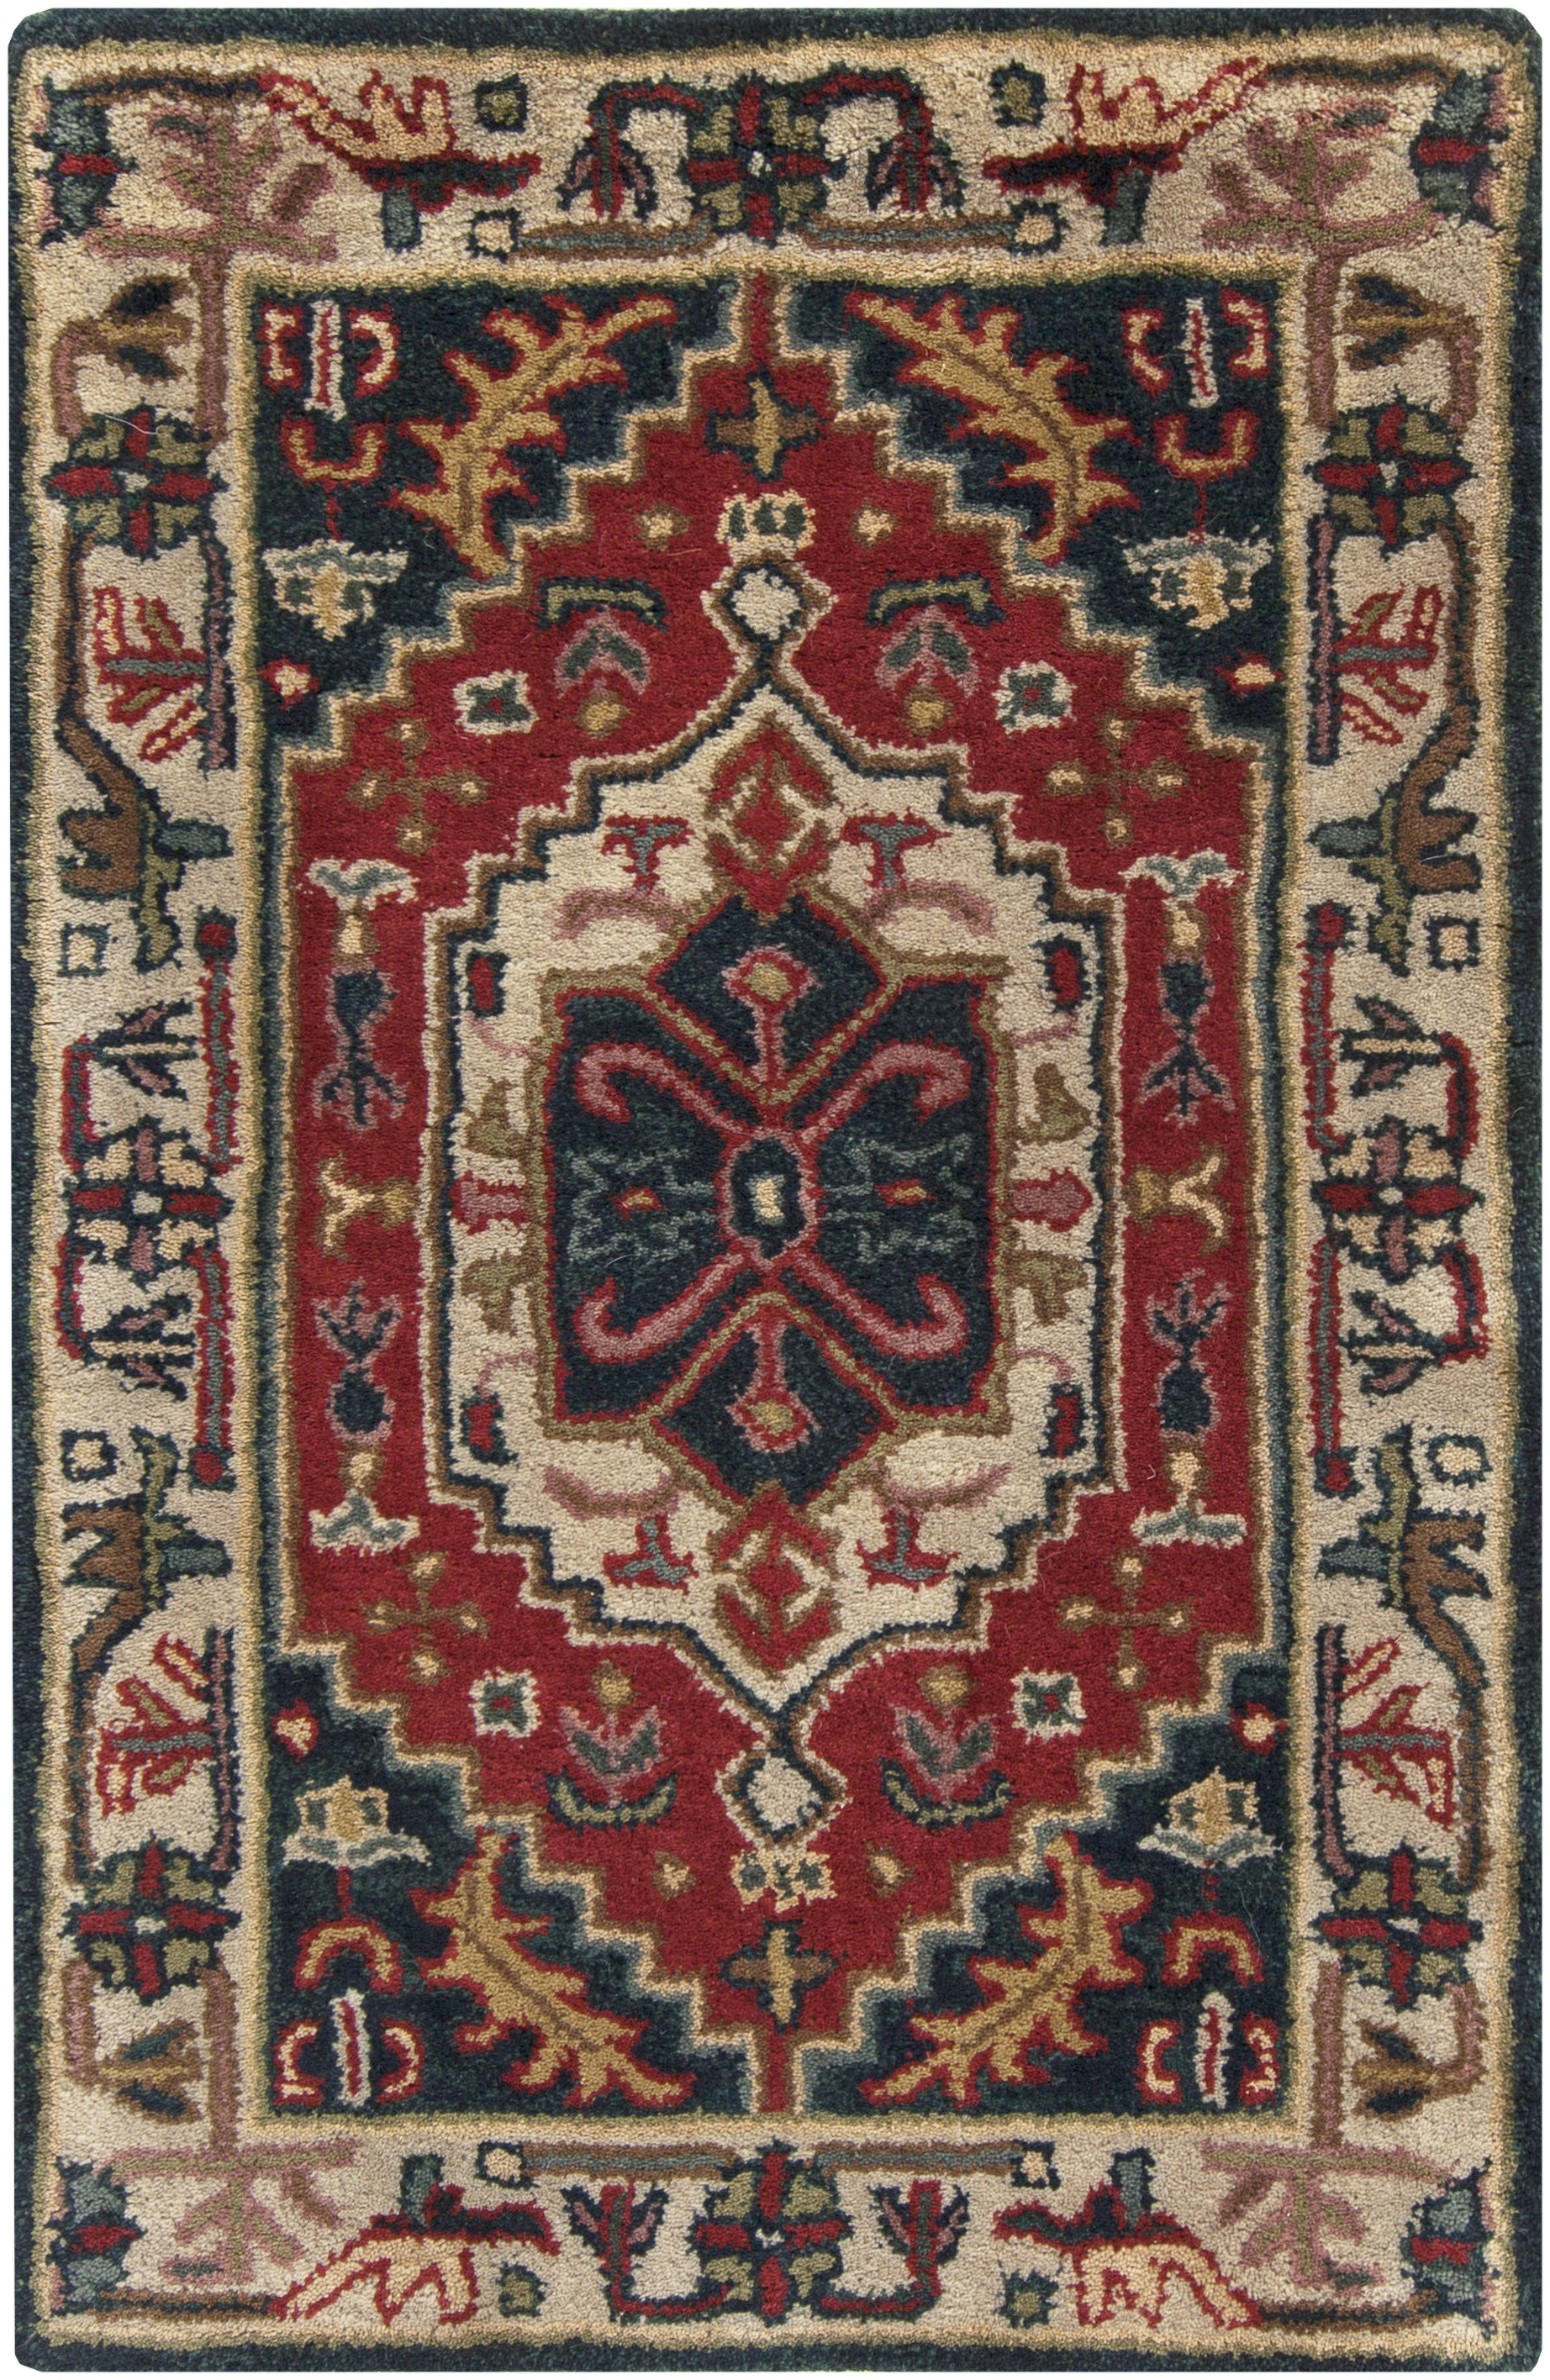 Ancient Treasures Charcoal Beige Olive Wool Area Rug L 36